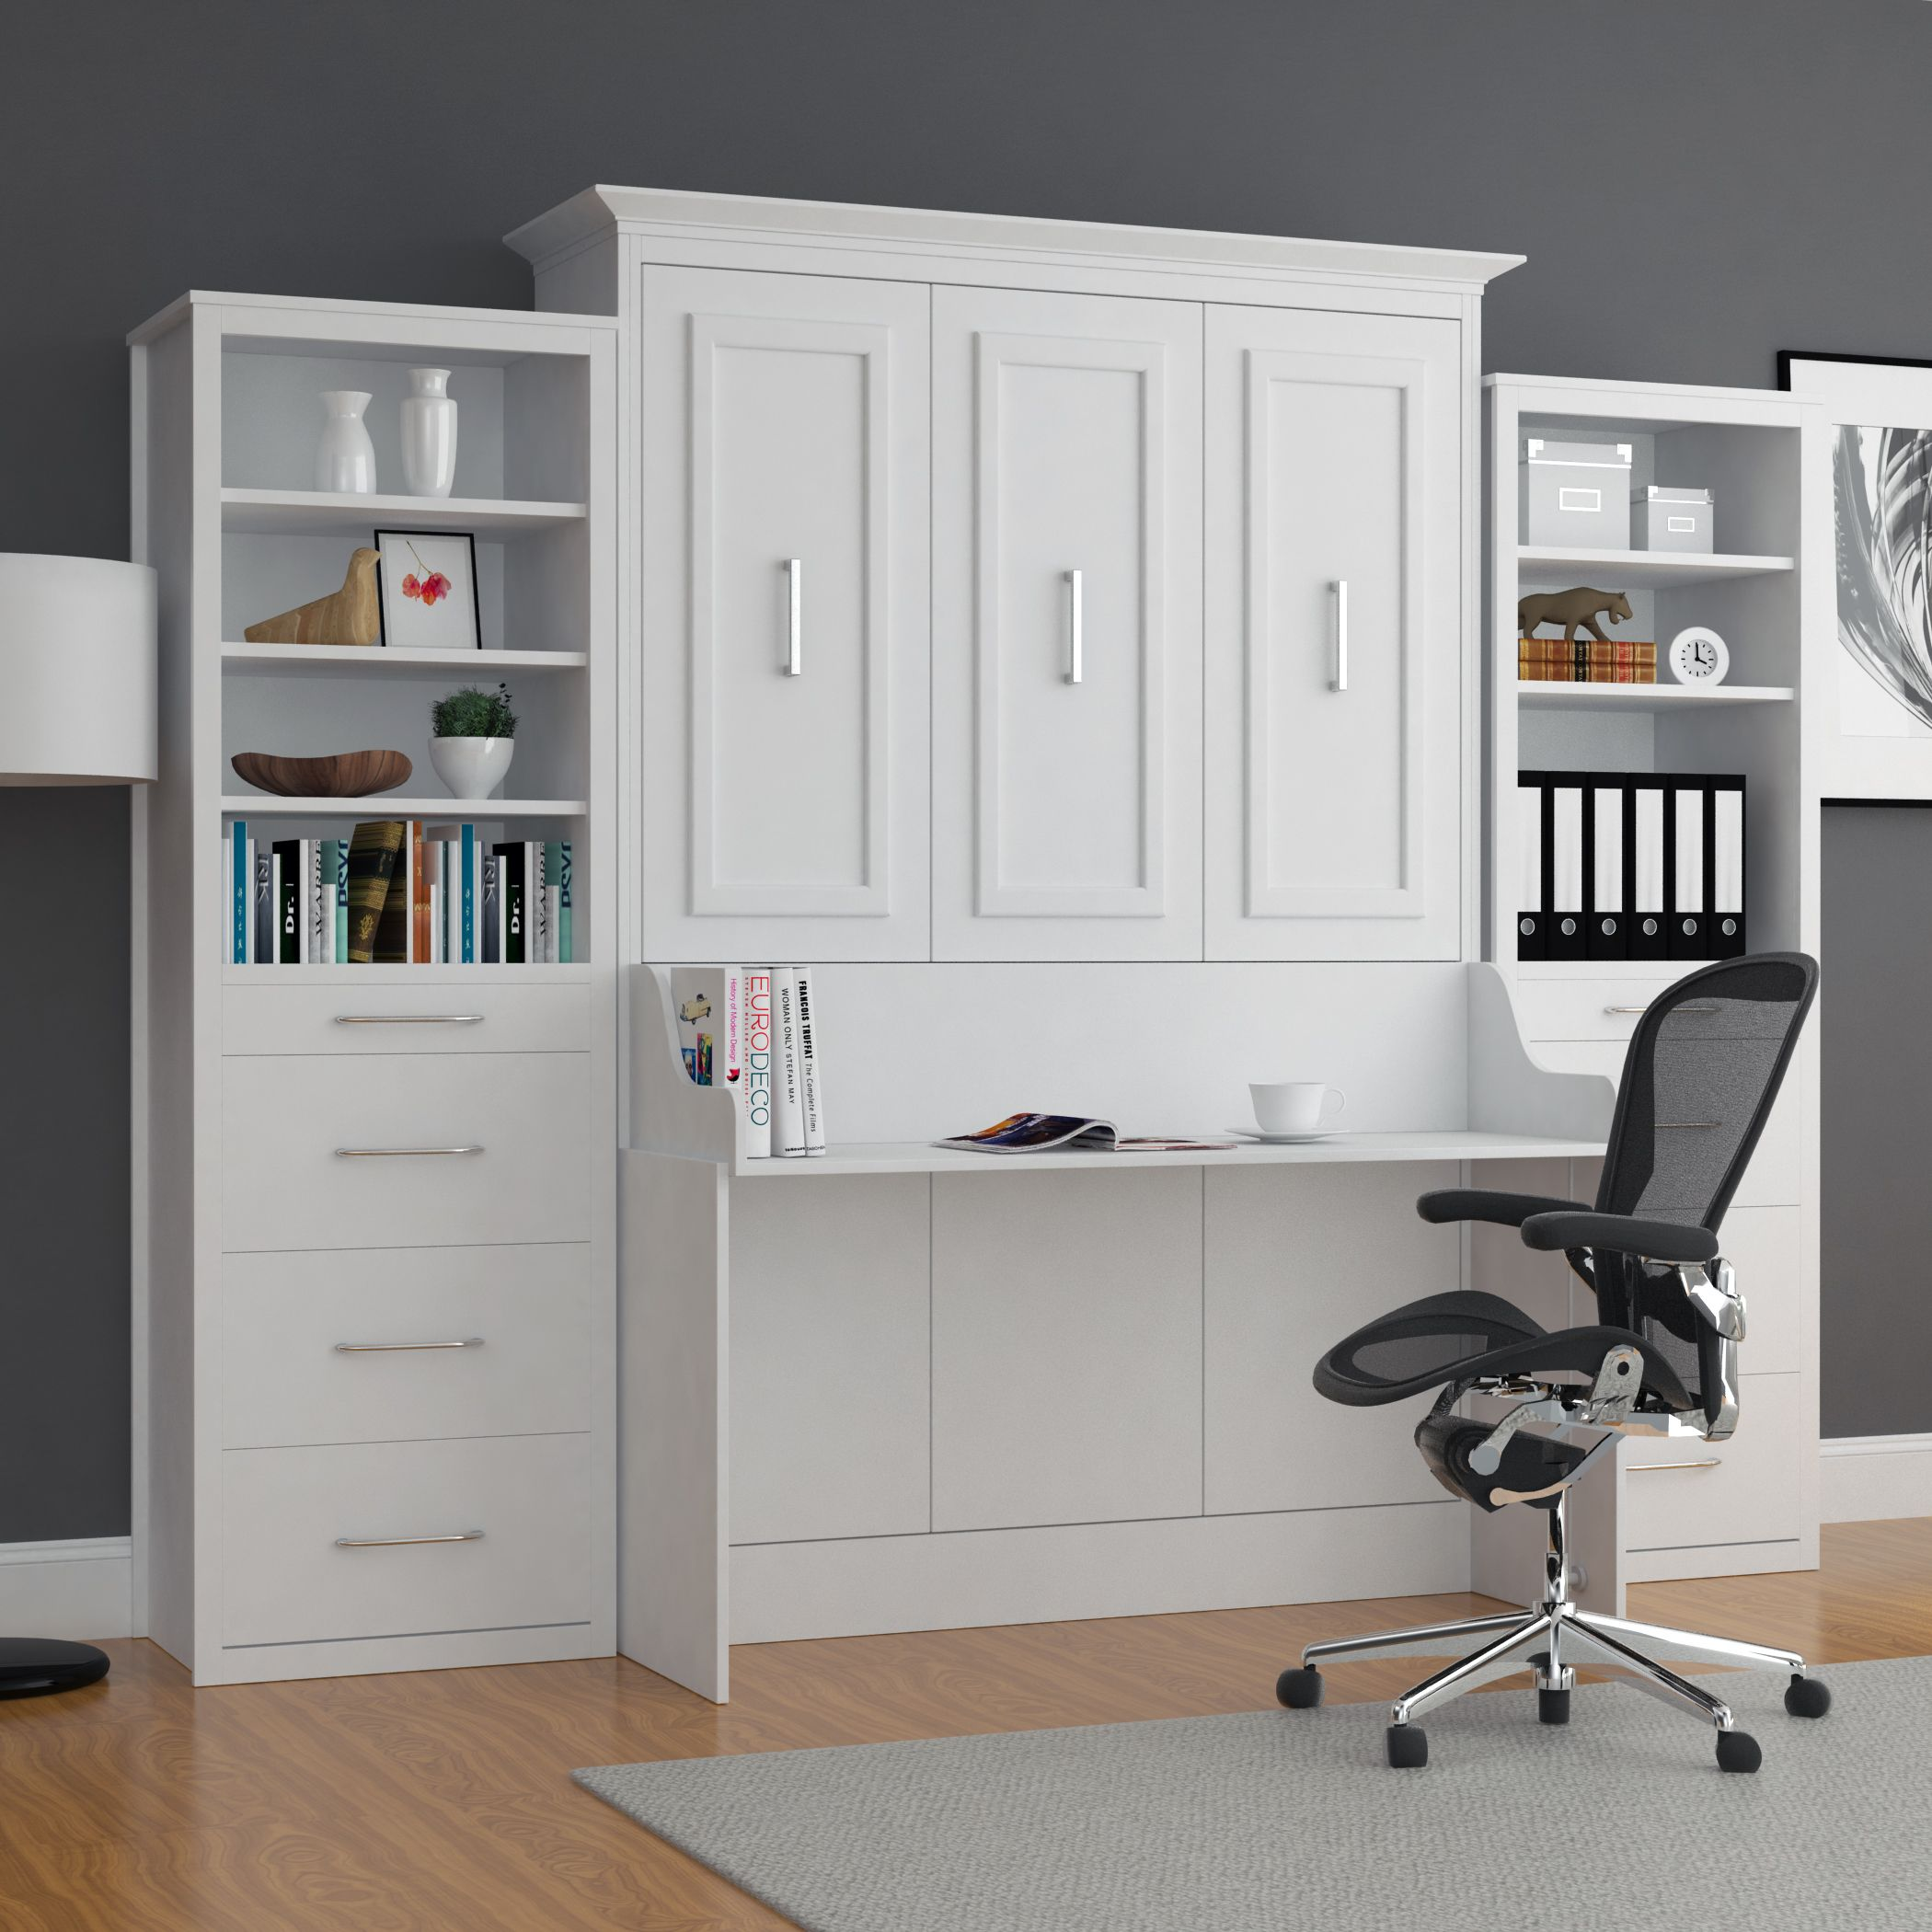 Alegra Full Wall Bed With Desk And Double Towers Murphy Bed Desk